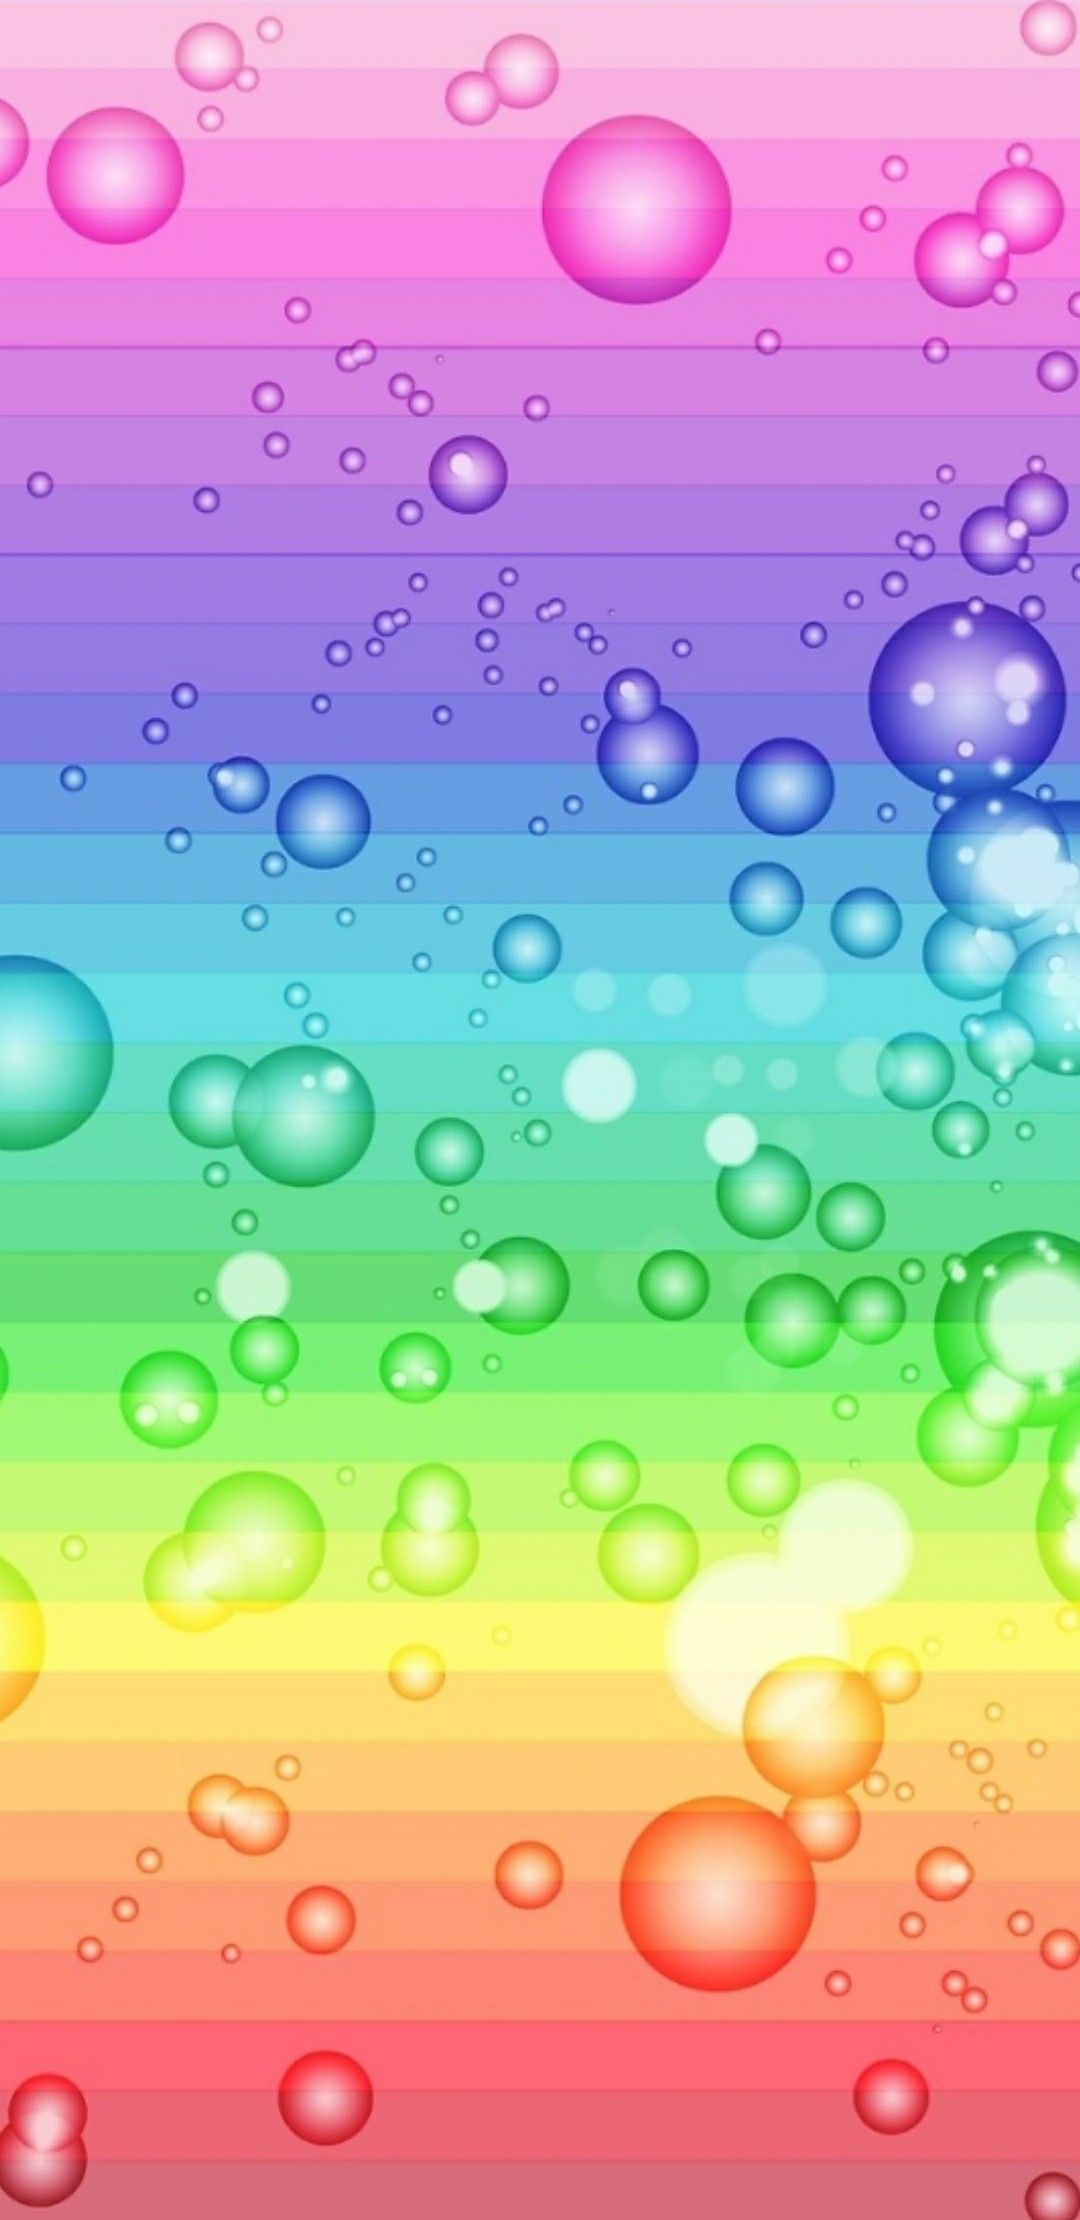 Rainbow Stripes And Bubbles Wallpaper Pink Colorful